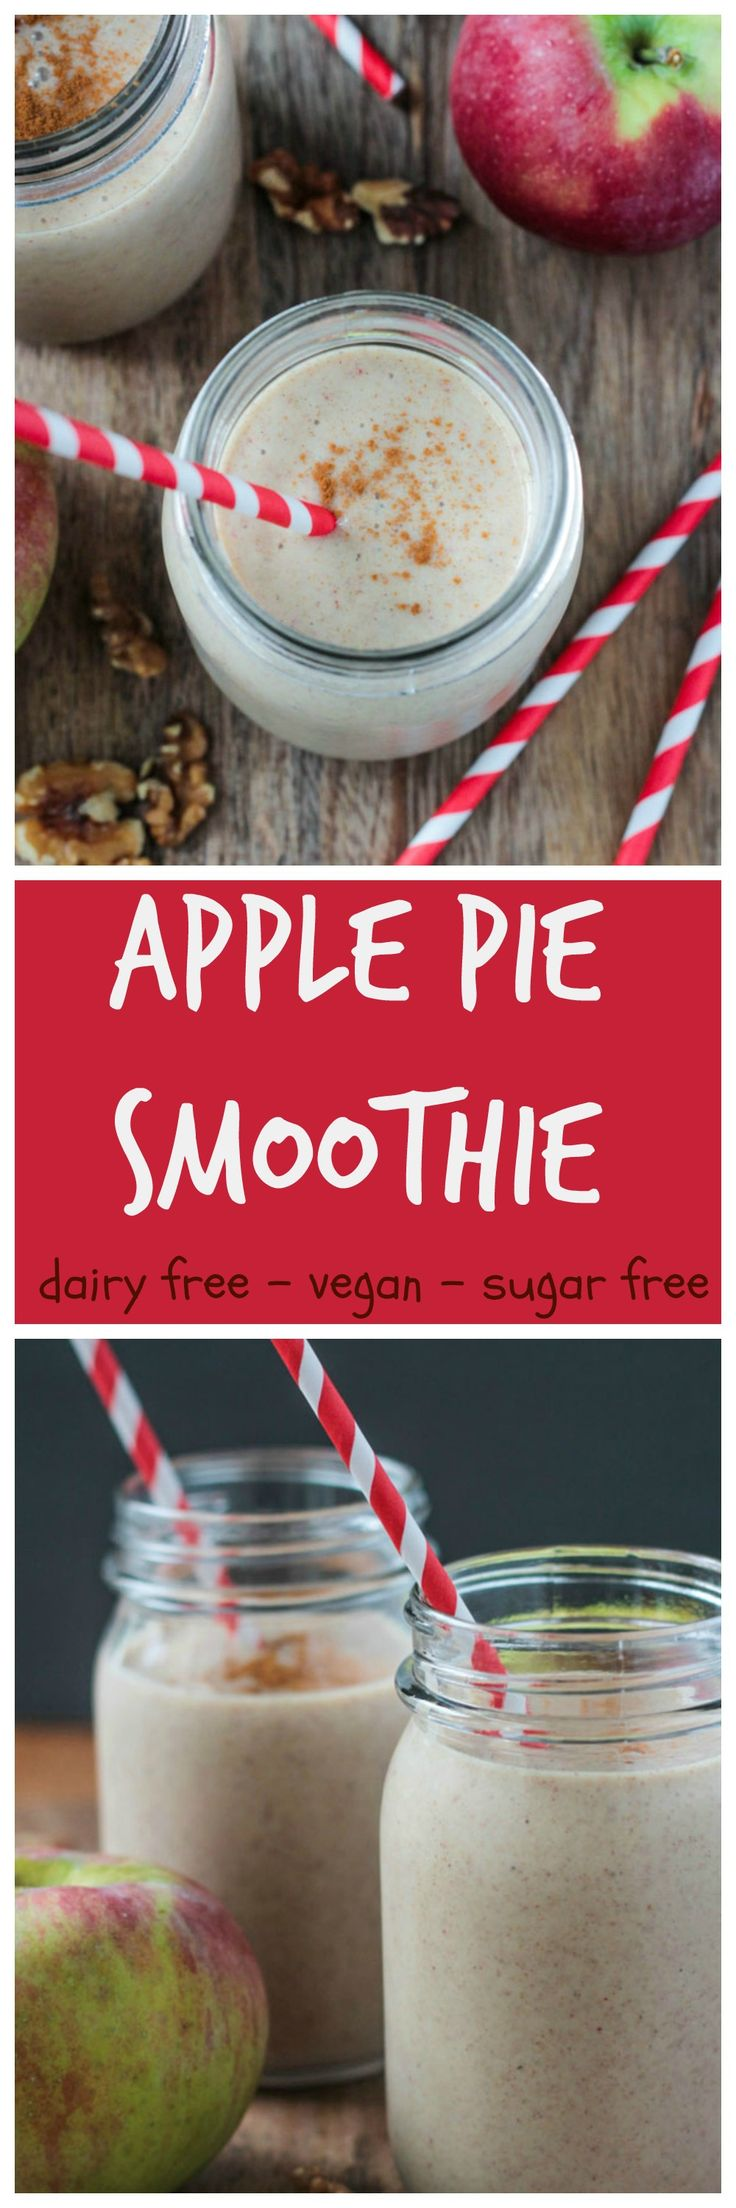 (ᵔᴥᵔ)Creamy, Apple Pie Smoothie - the perfect fall refresher!